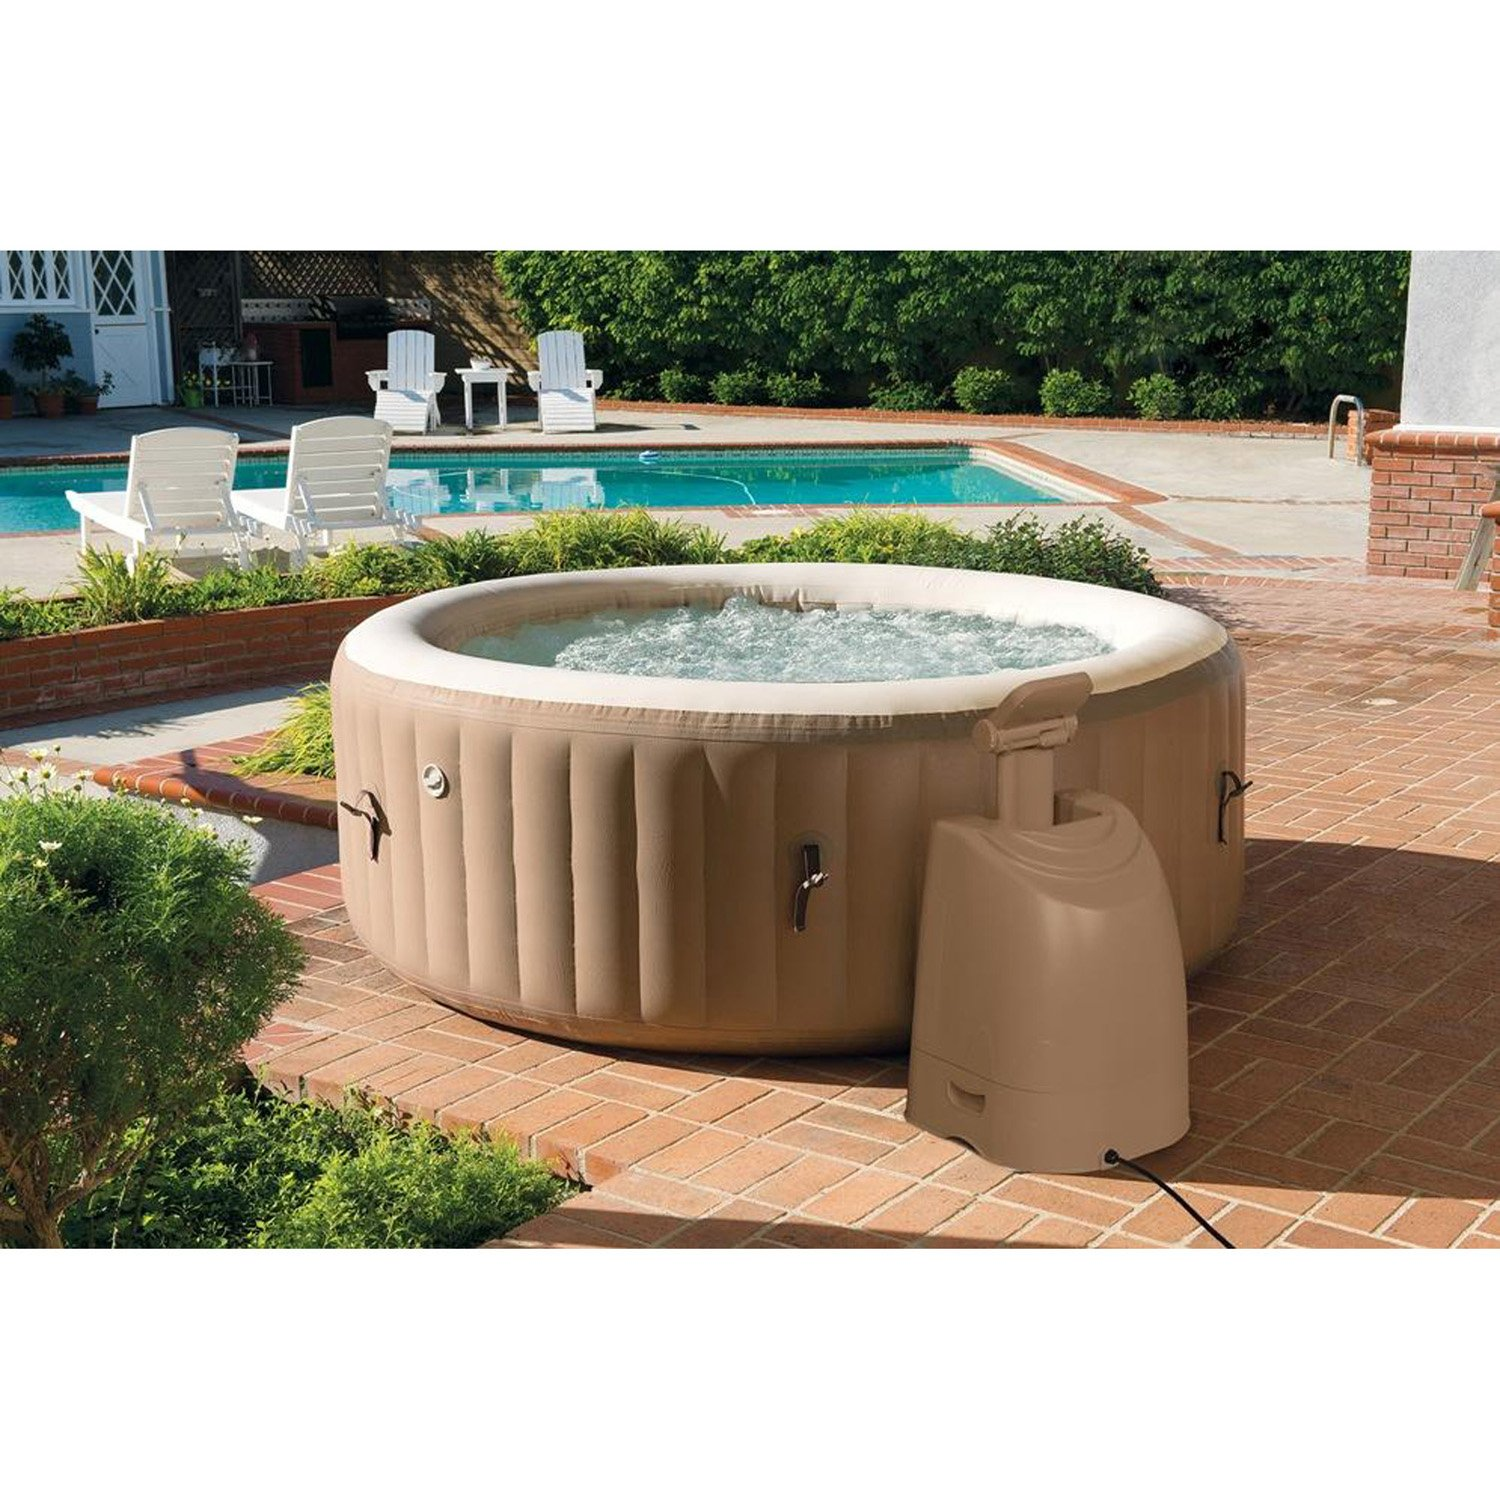 Intex Spa hinchable redondo - 4 plazas: Amazon.es: Jardín